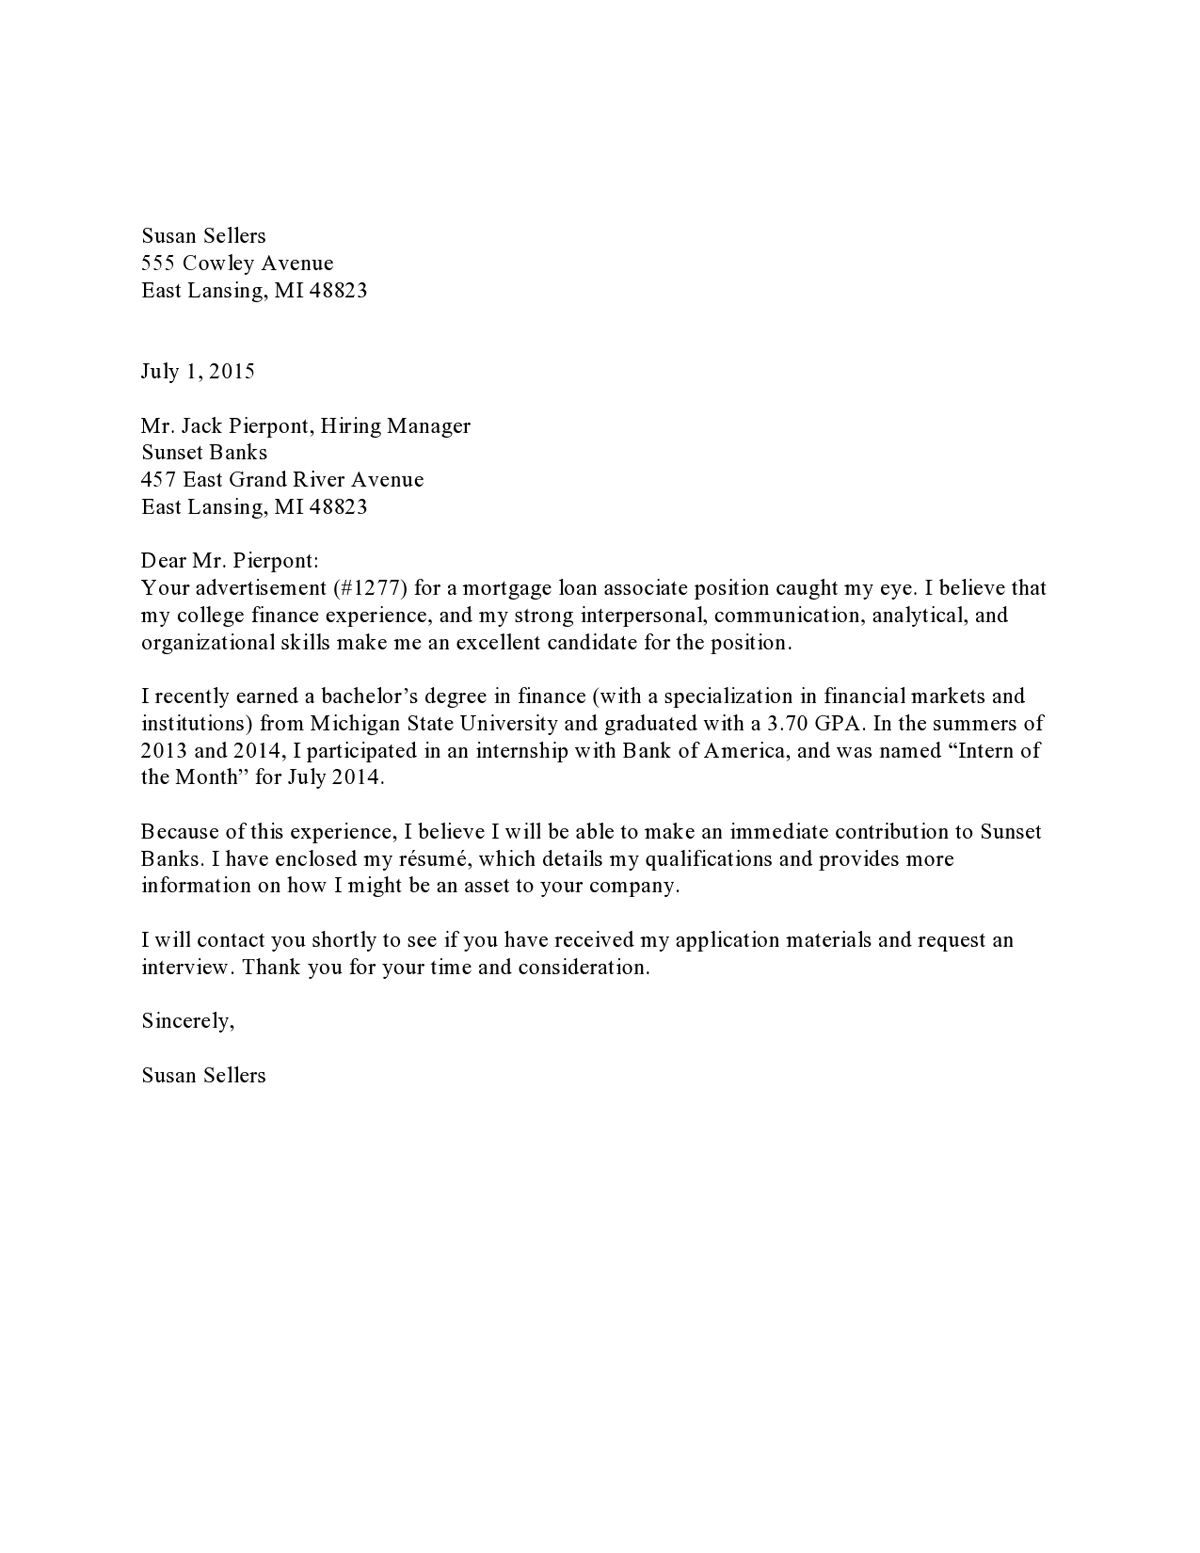 exemple of cover letter - 10 resume cover letter examples pdf